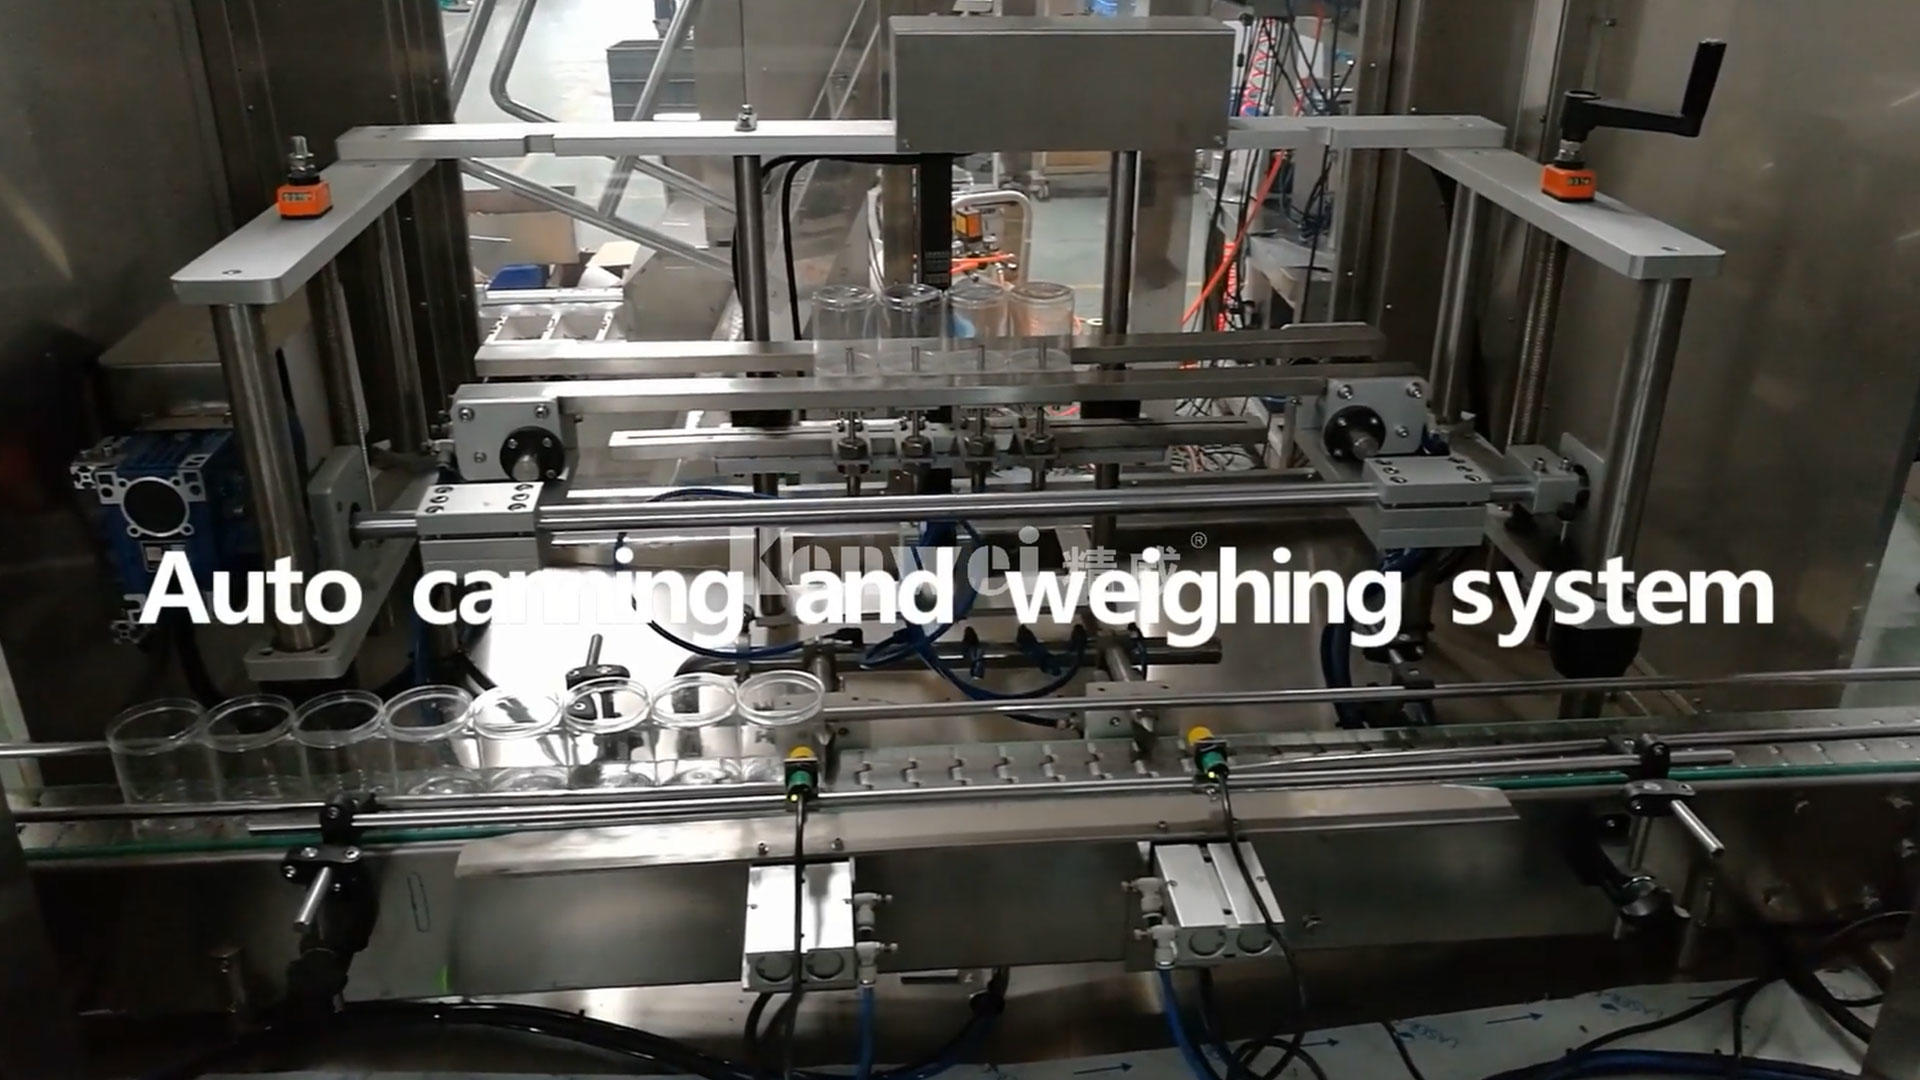 Auto canning and weighing system